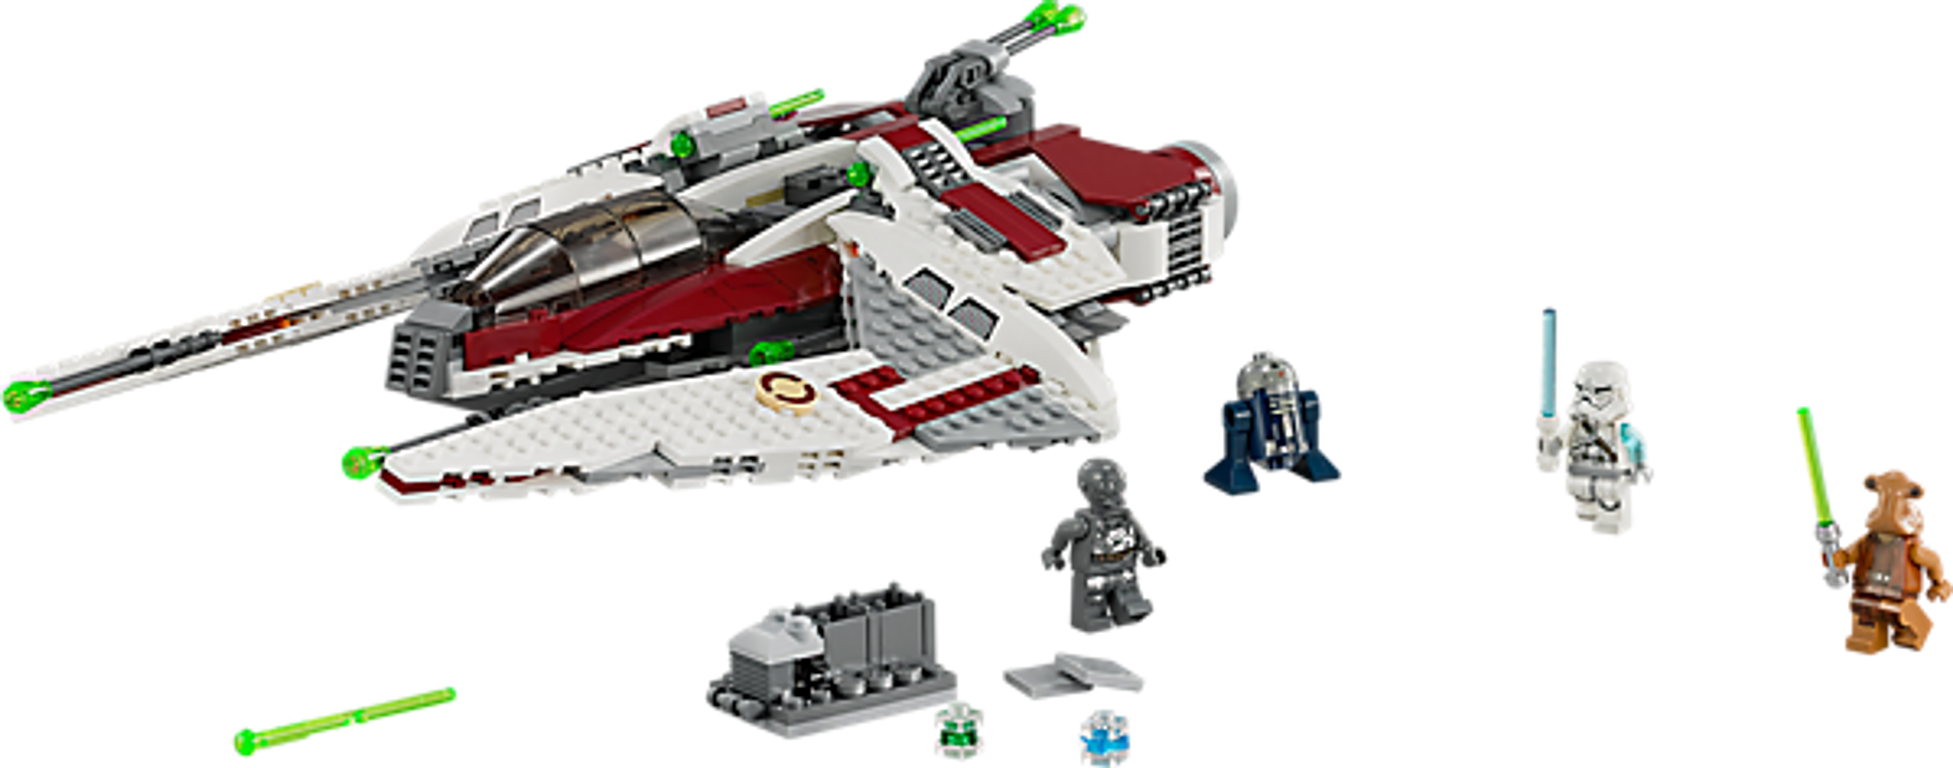 LEGO® Star Wars Jedi Scout Fighter components